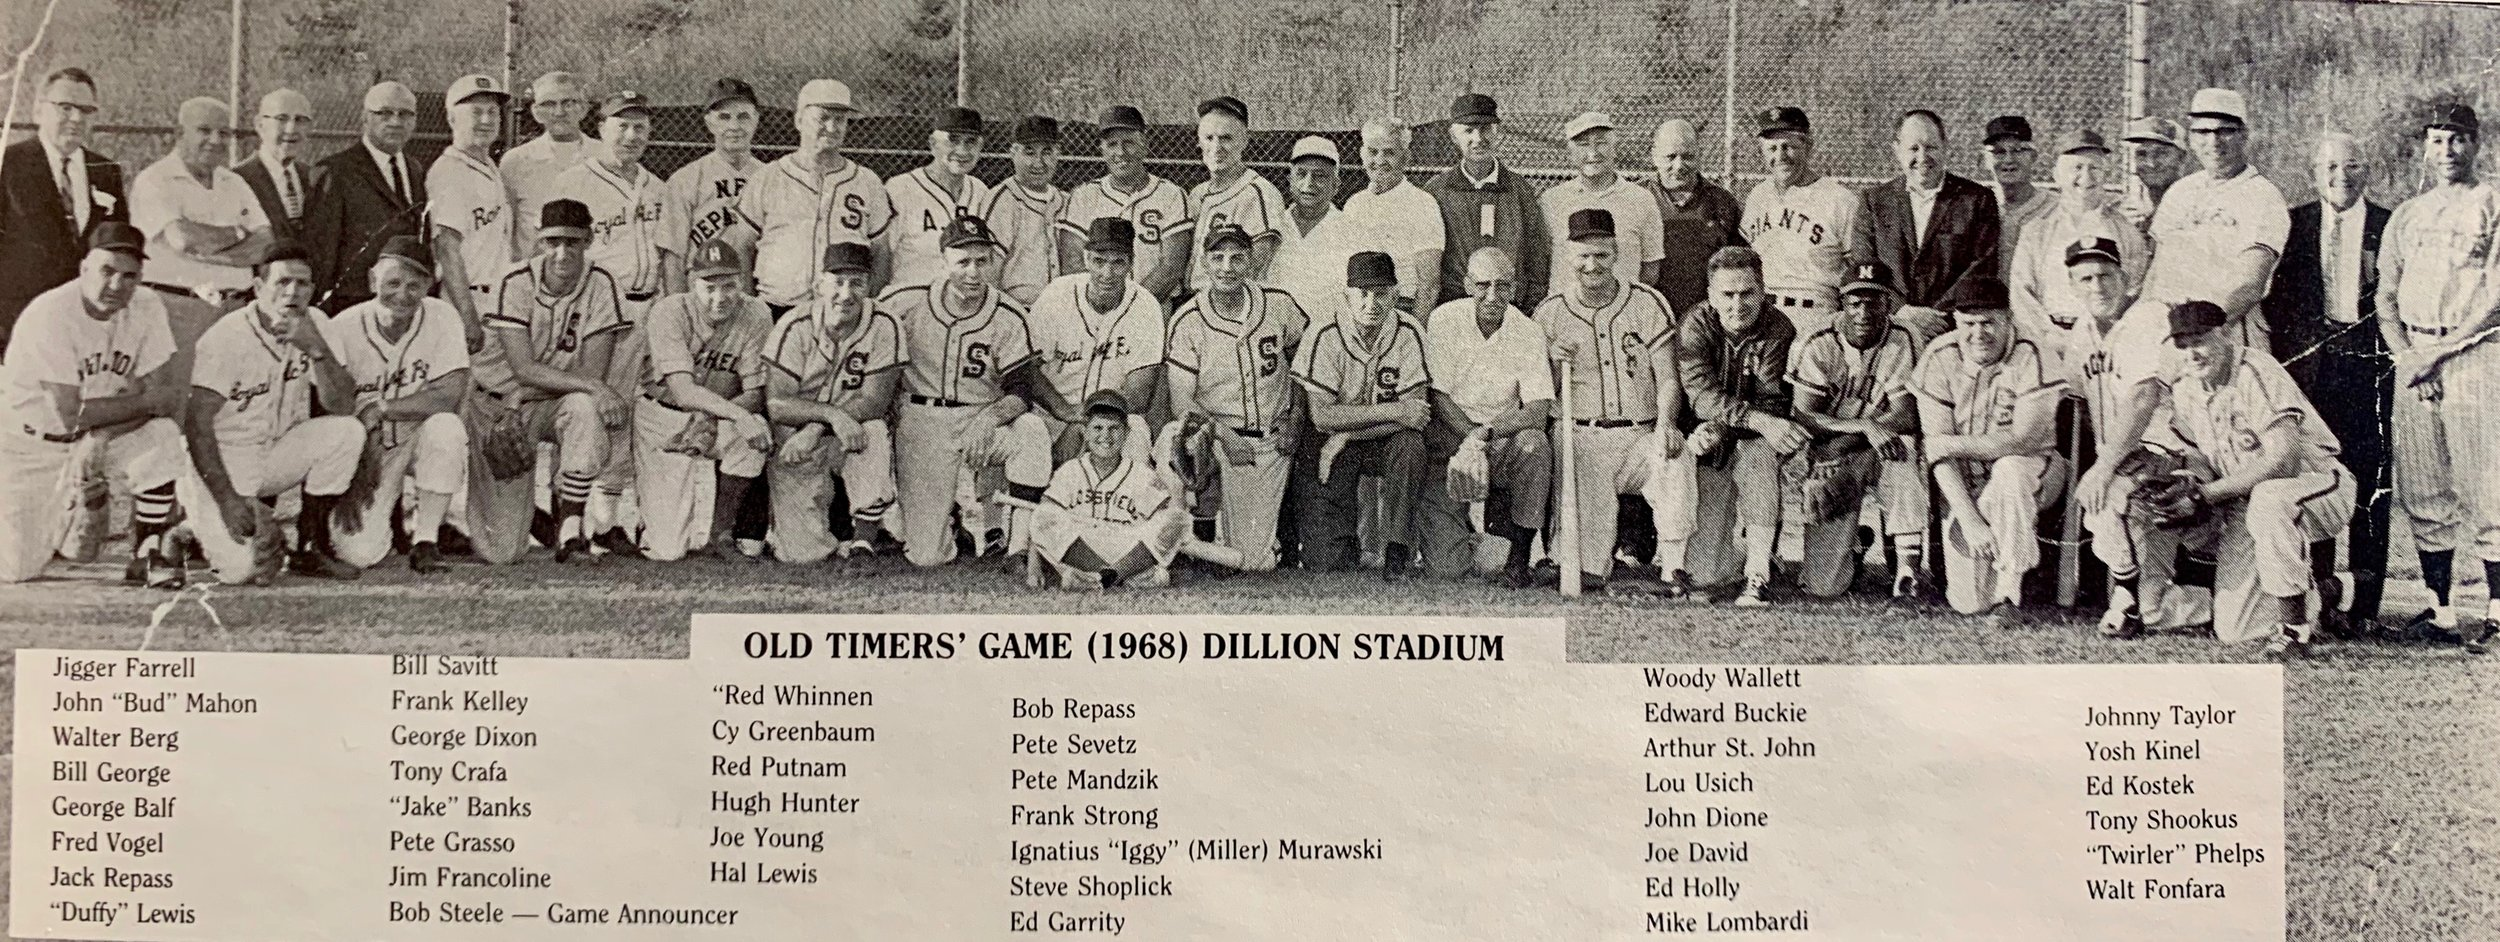 GHTBL Old Timers' Game, 1968.